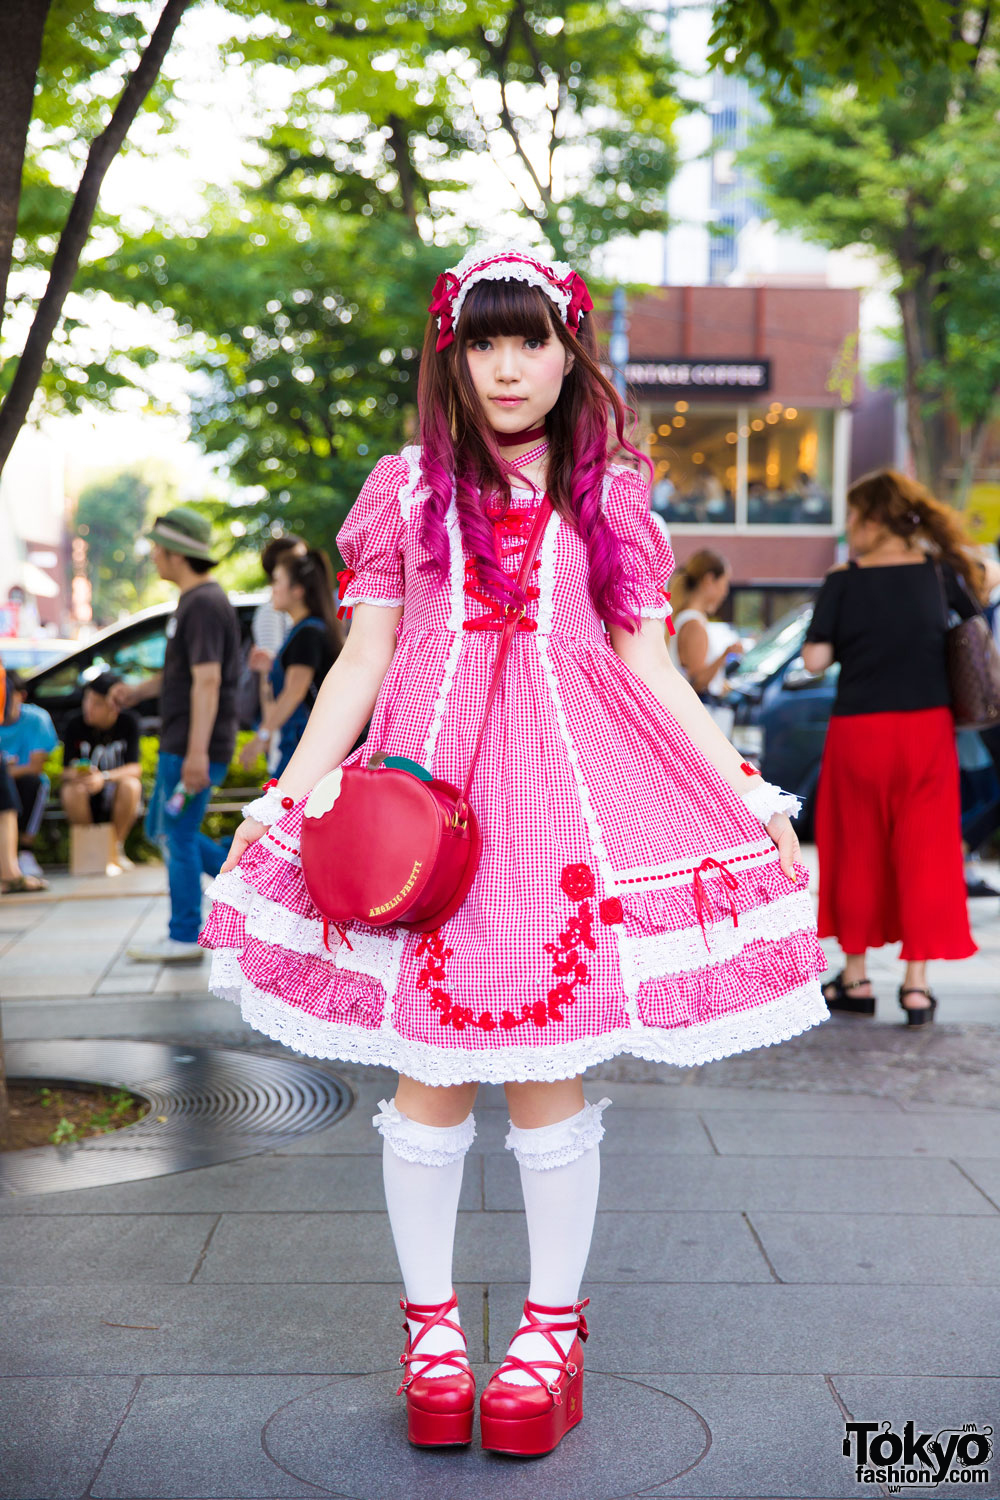 Gingham Lolita Fashion On The Street In Harajuku W Baby